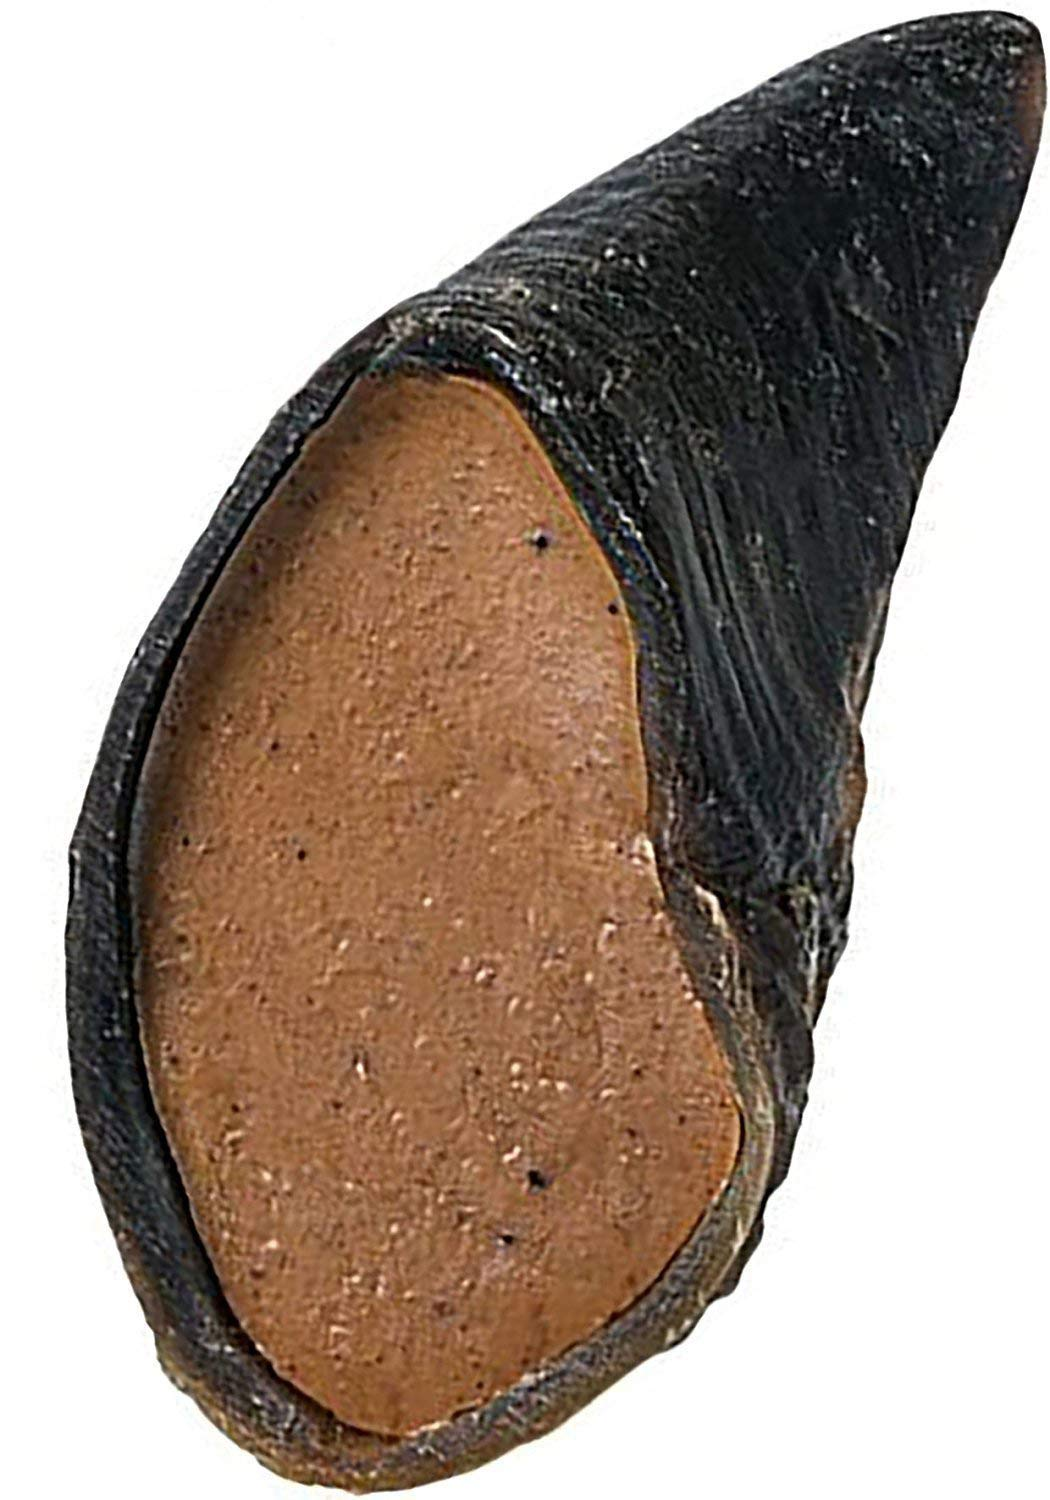 Peanut Butter Filled Cow Hooves for Dogs - Made in The USA Bulk Dog Dental Treats & Dog Chews Beef Hoof, American Made (5 Peanut Butter Filled Hooves) by Pawstruck